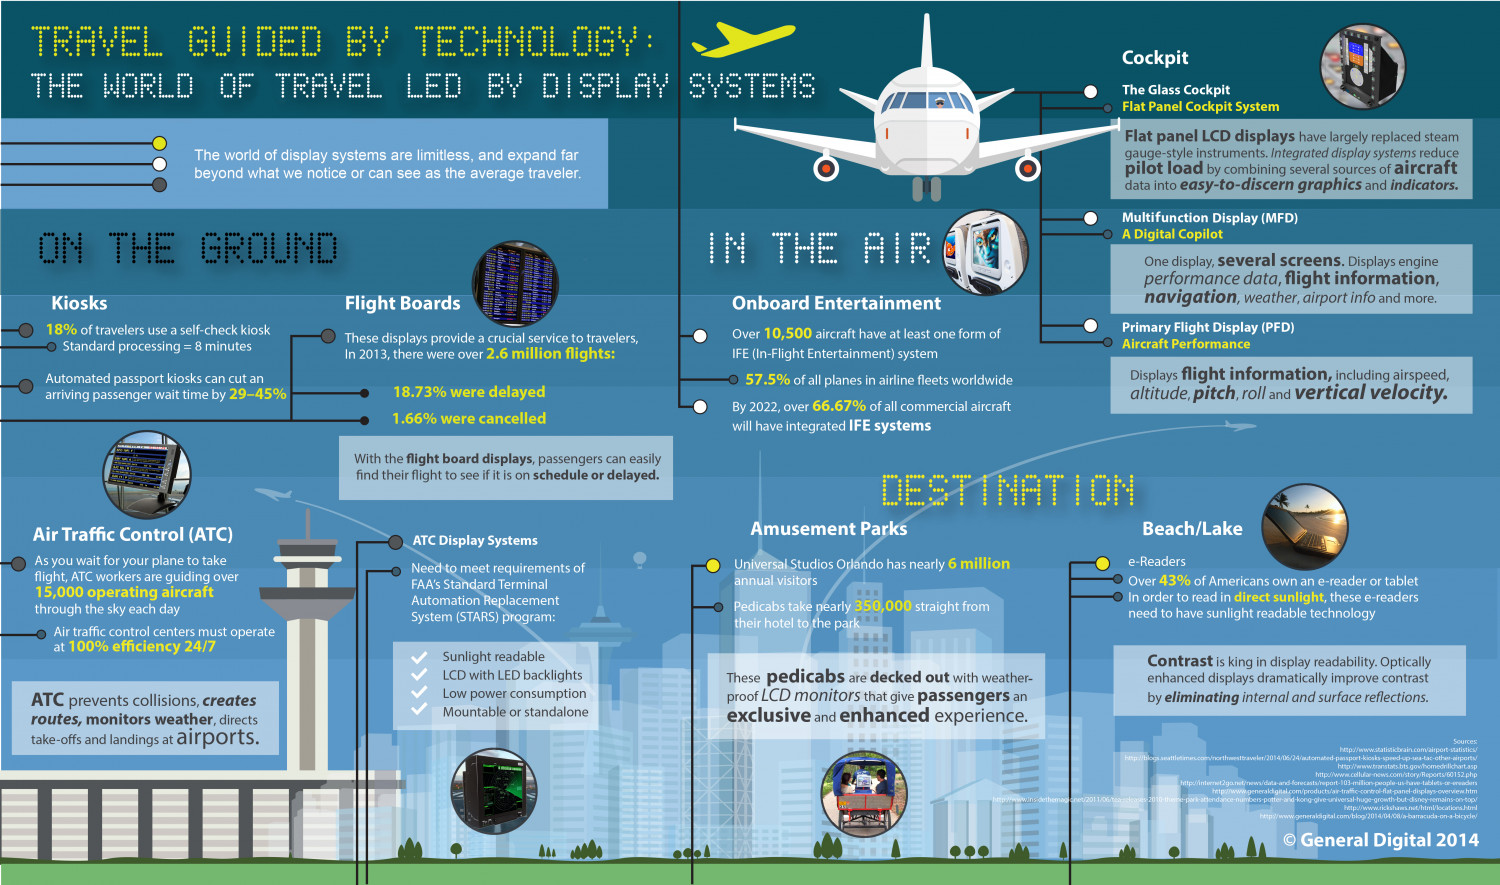 A WORLD OF TRAVEL LED BY TECHNOLOGY Infographic